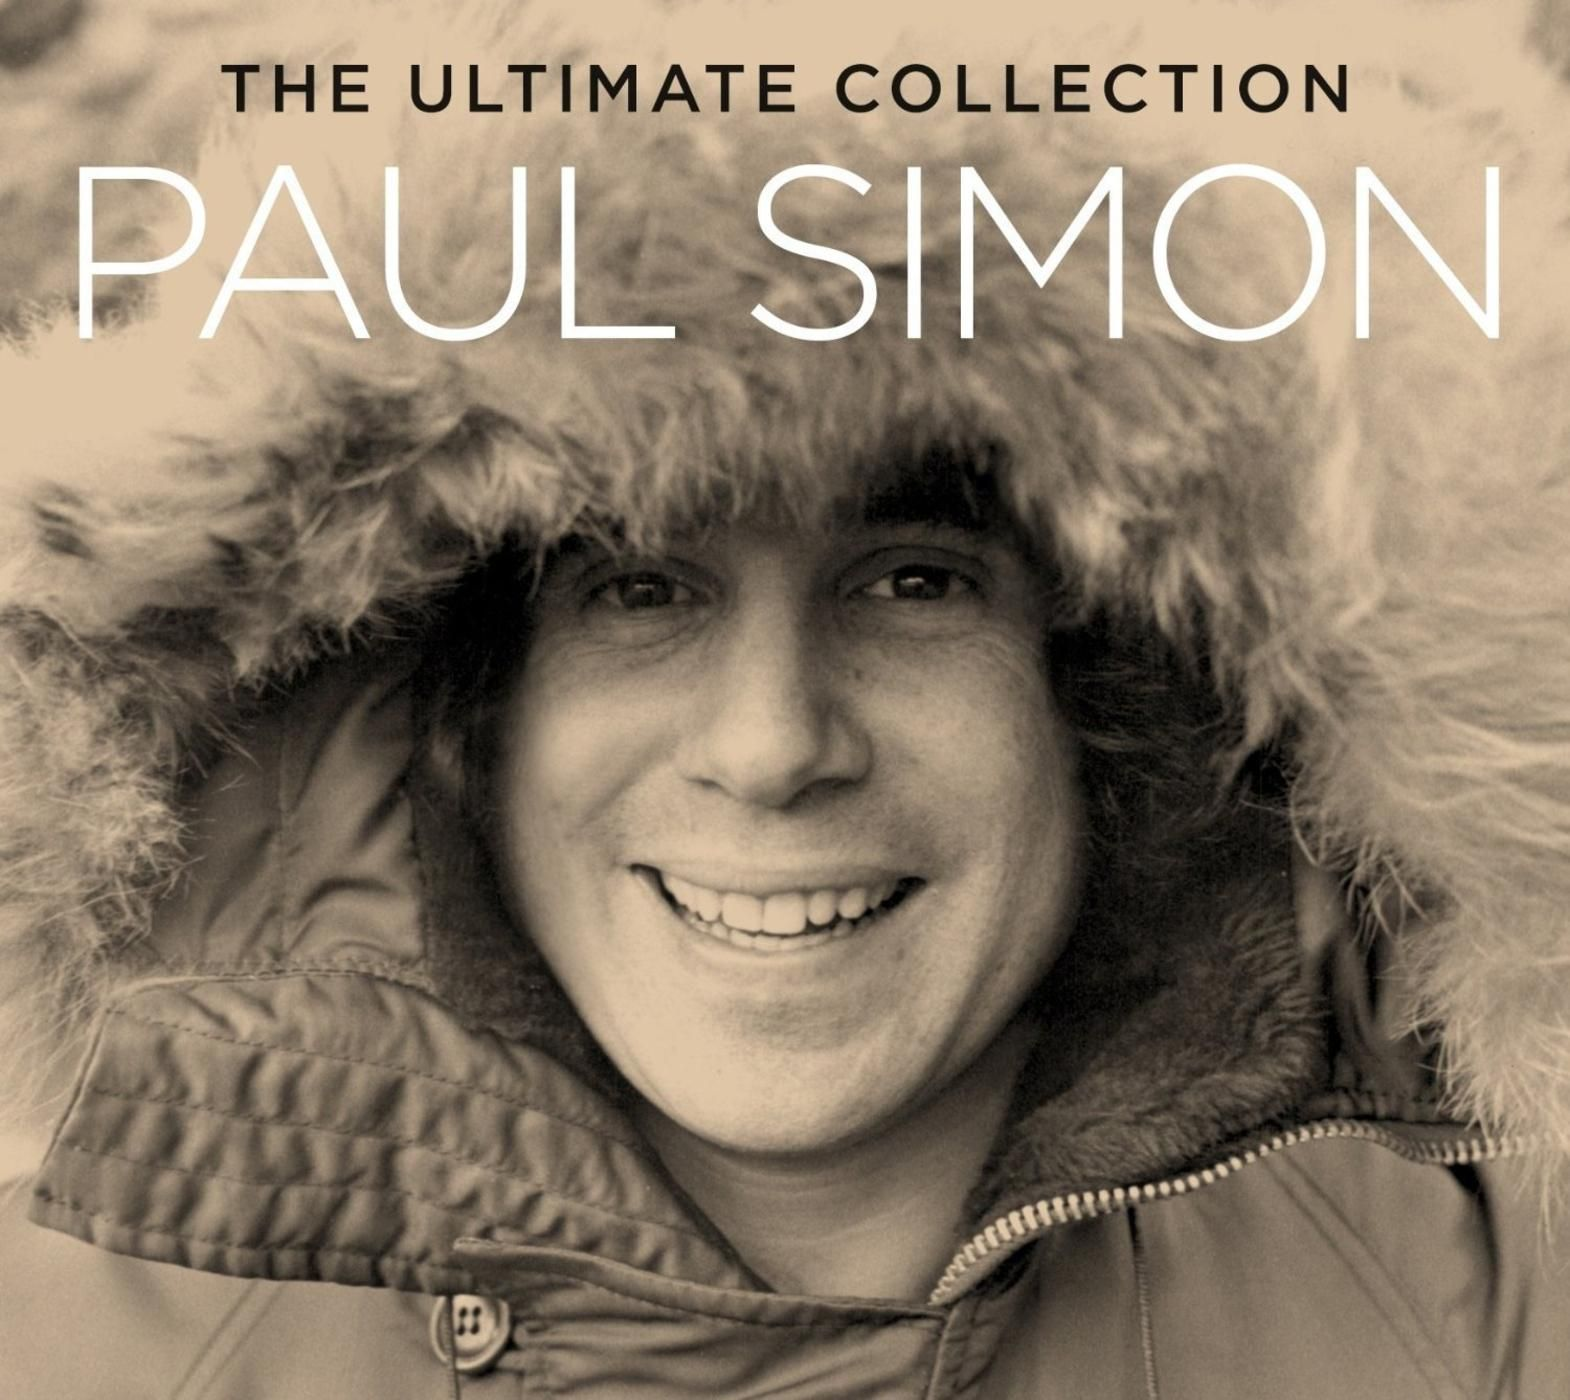 Paul Simon - The Ultimate Collection album cover